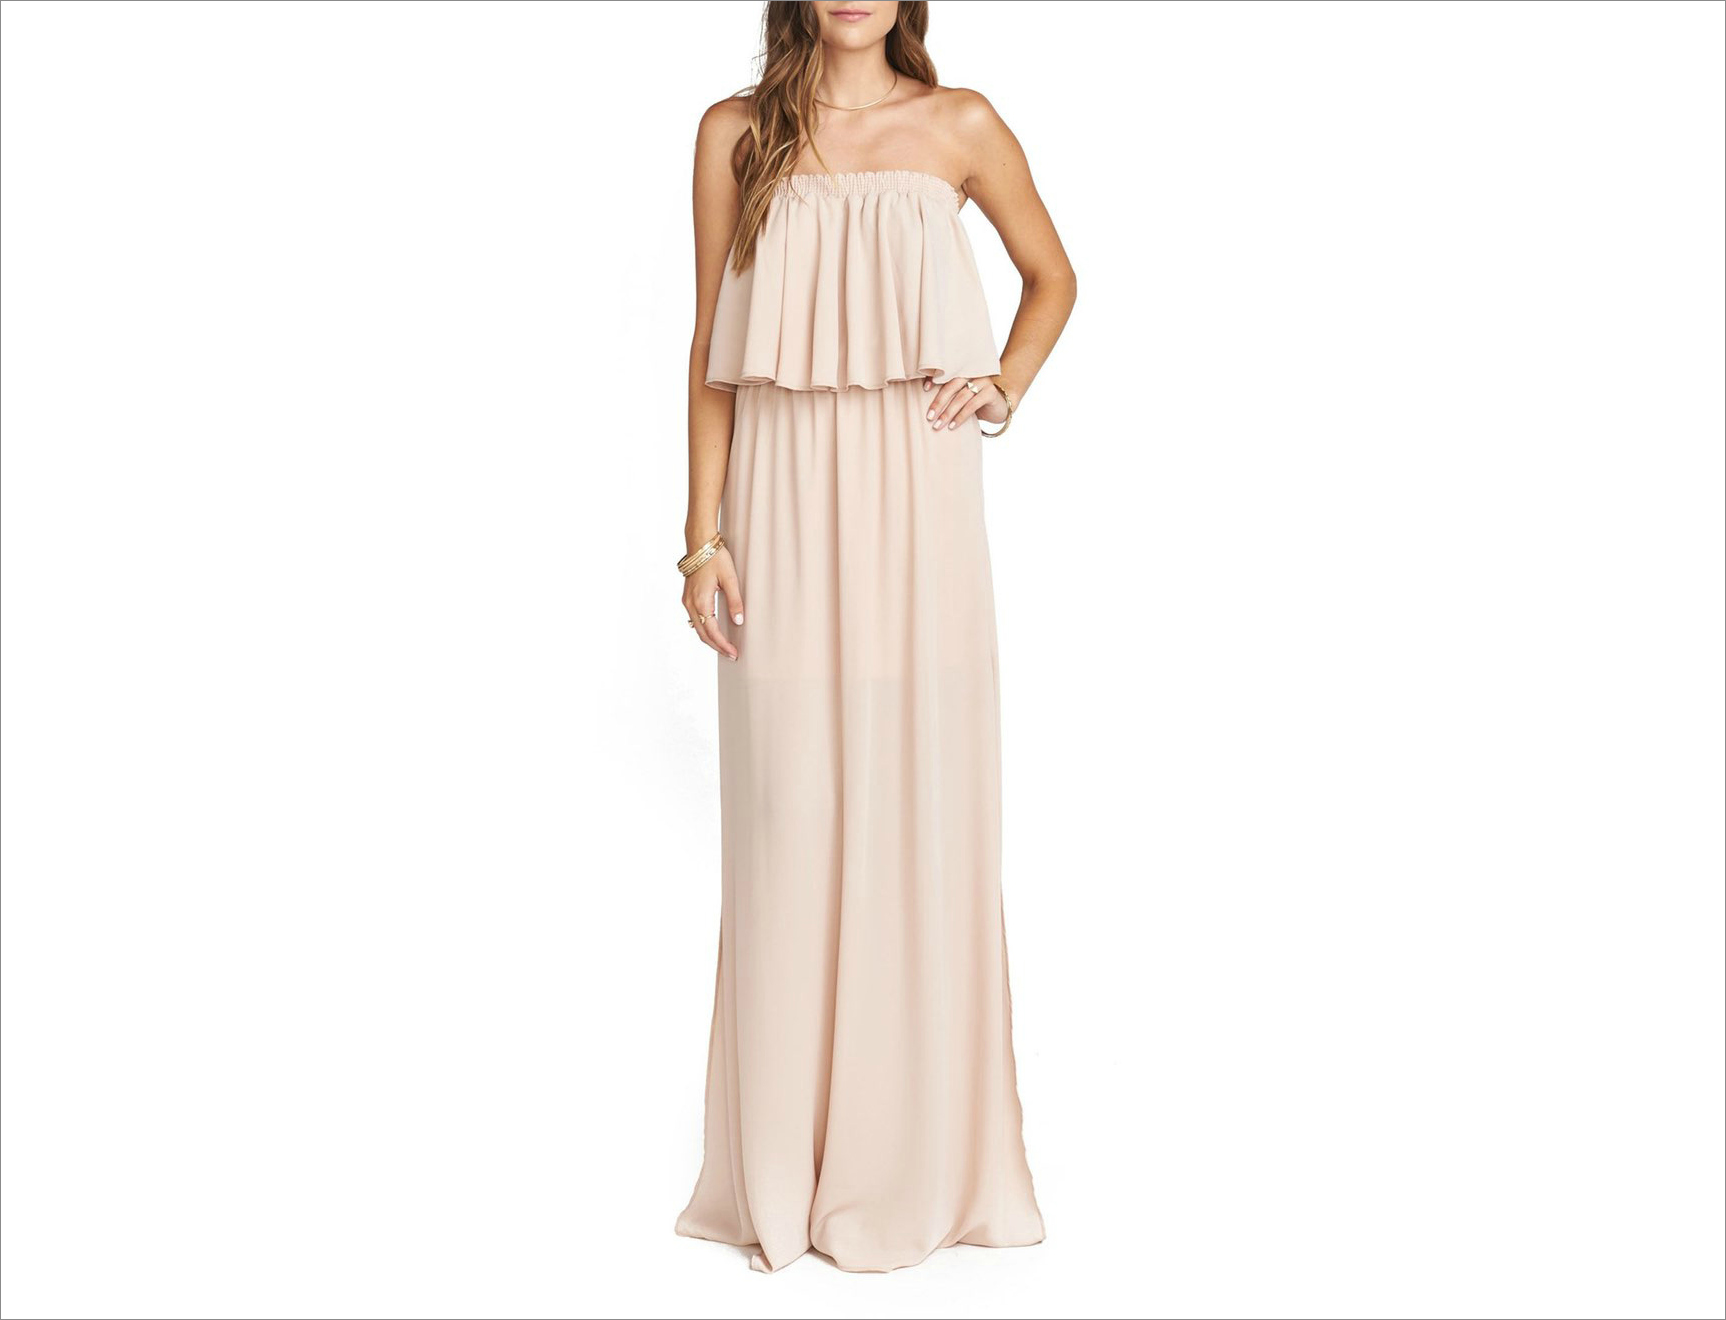 Hacienda convertible off-the-shoulder a-line bridesmaid dress in blush Show Me Your Mumu